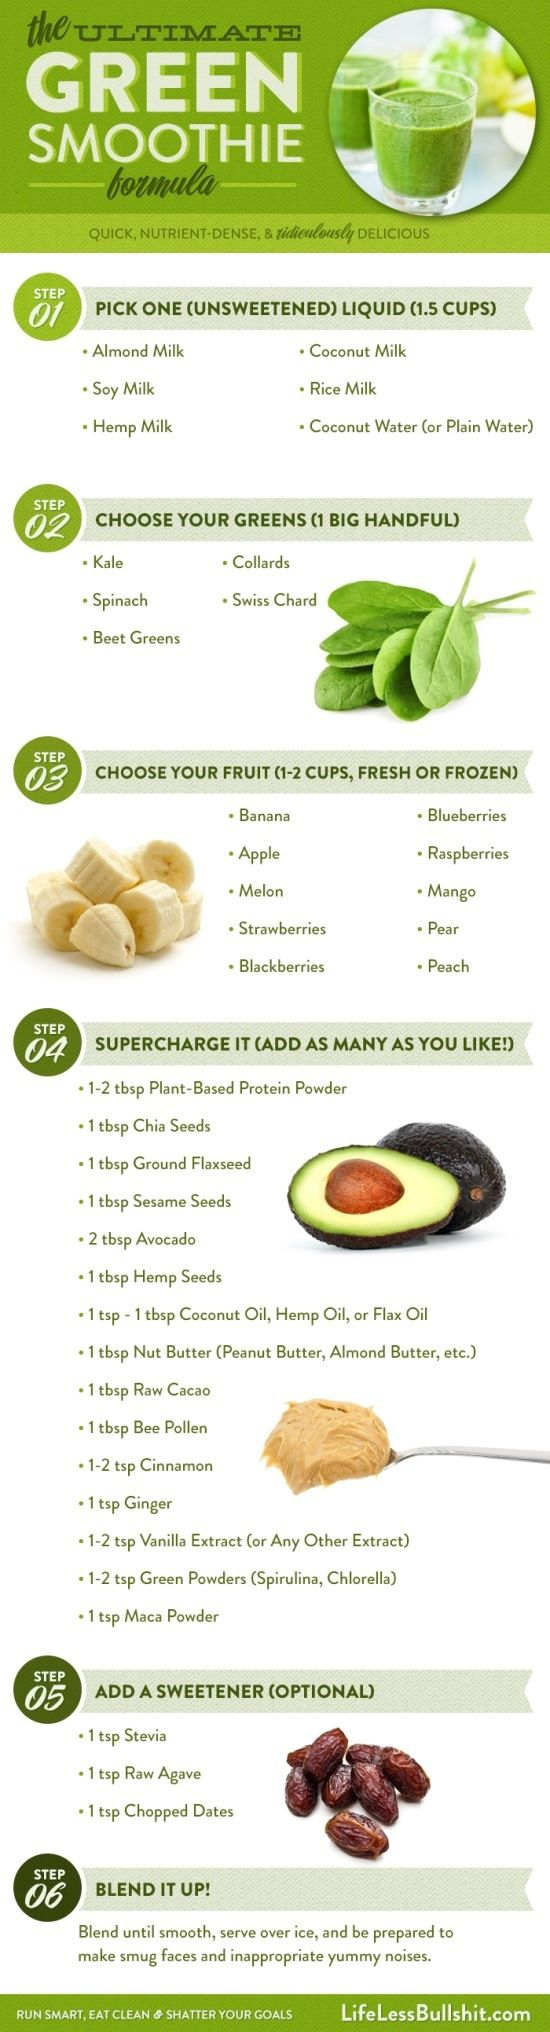 Green smoothies- gonna try these for breakfast. Said to give lasting energy and have tons of healthy effects!